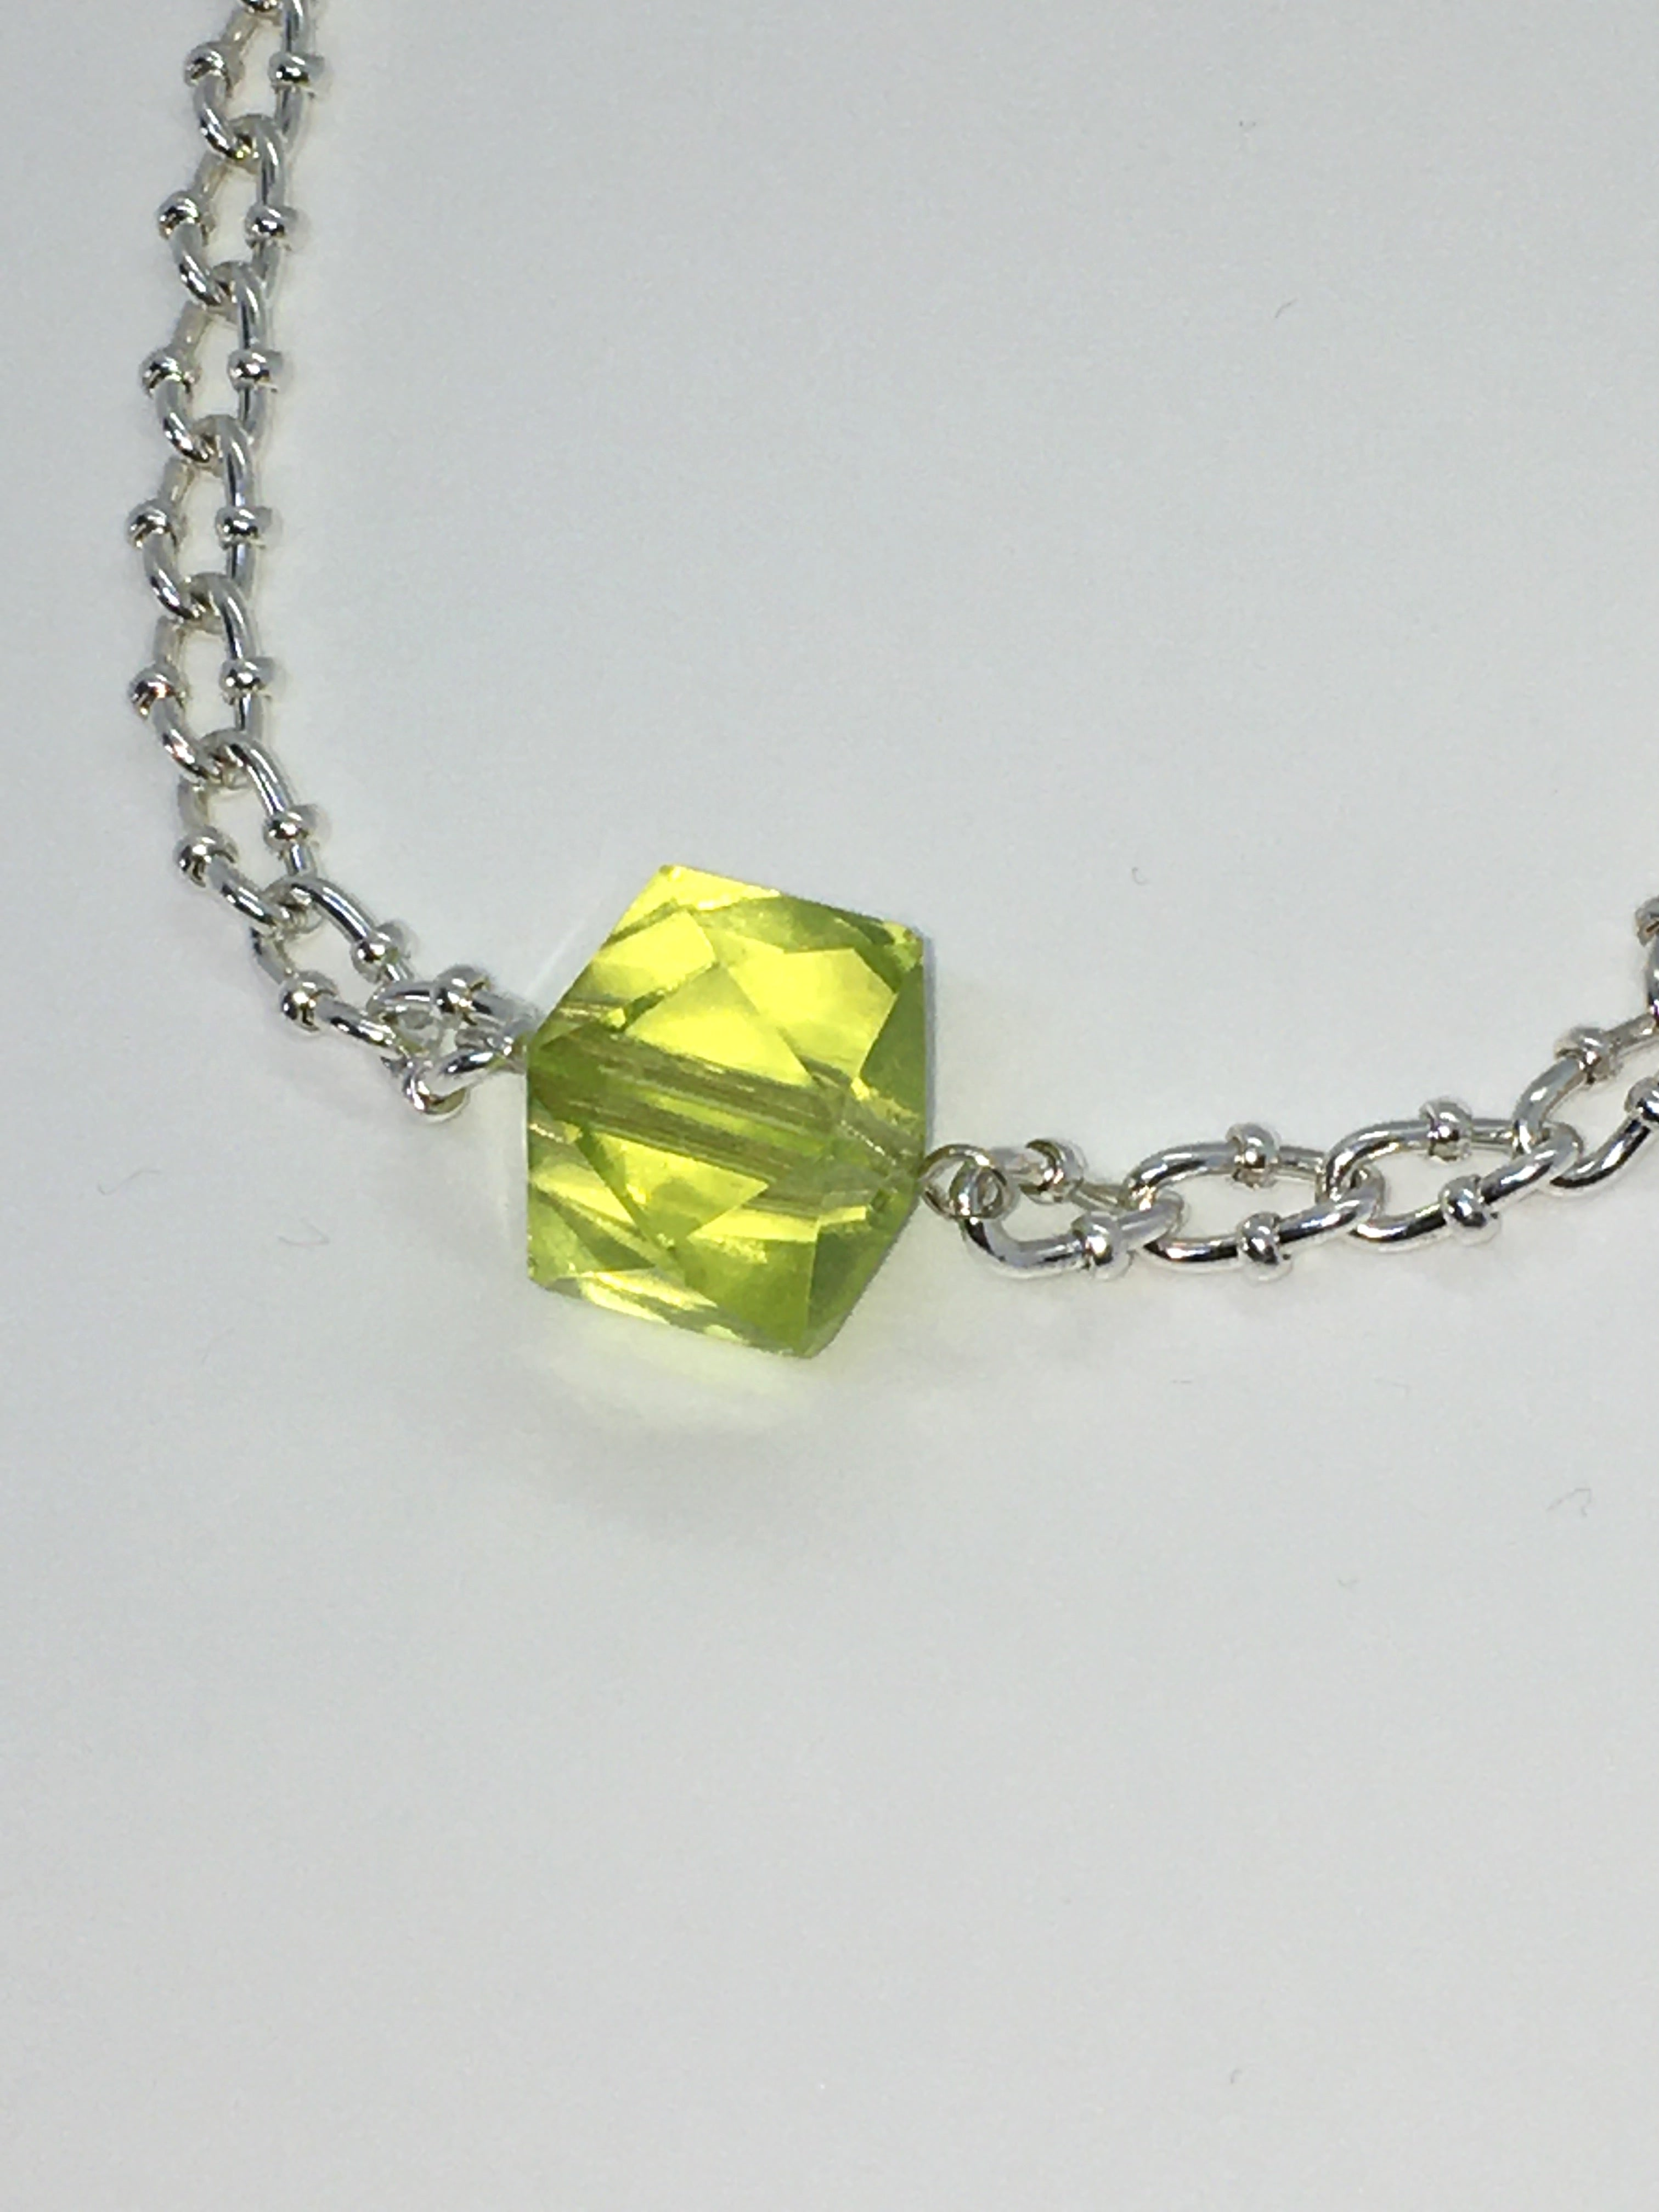 Special Crystal necklace - Yellow Polyhedron - One of a kind